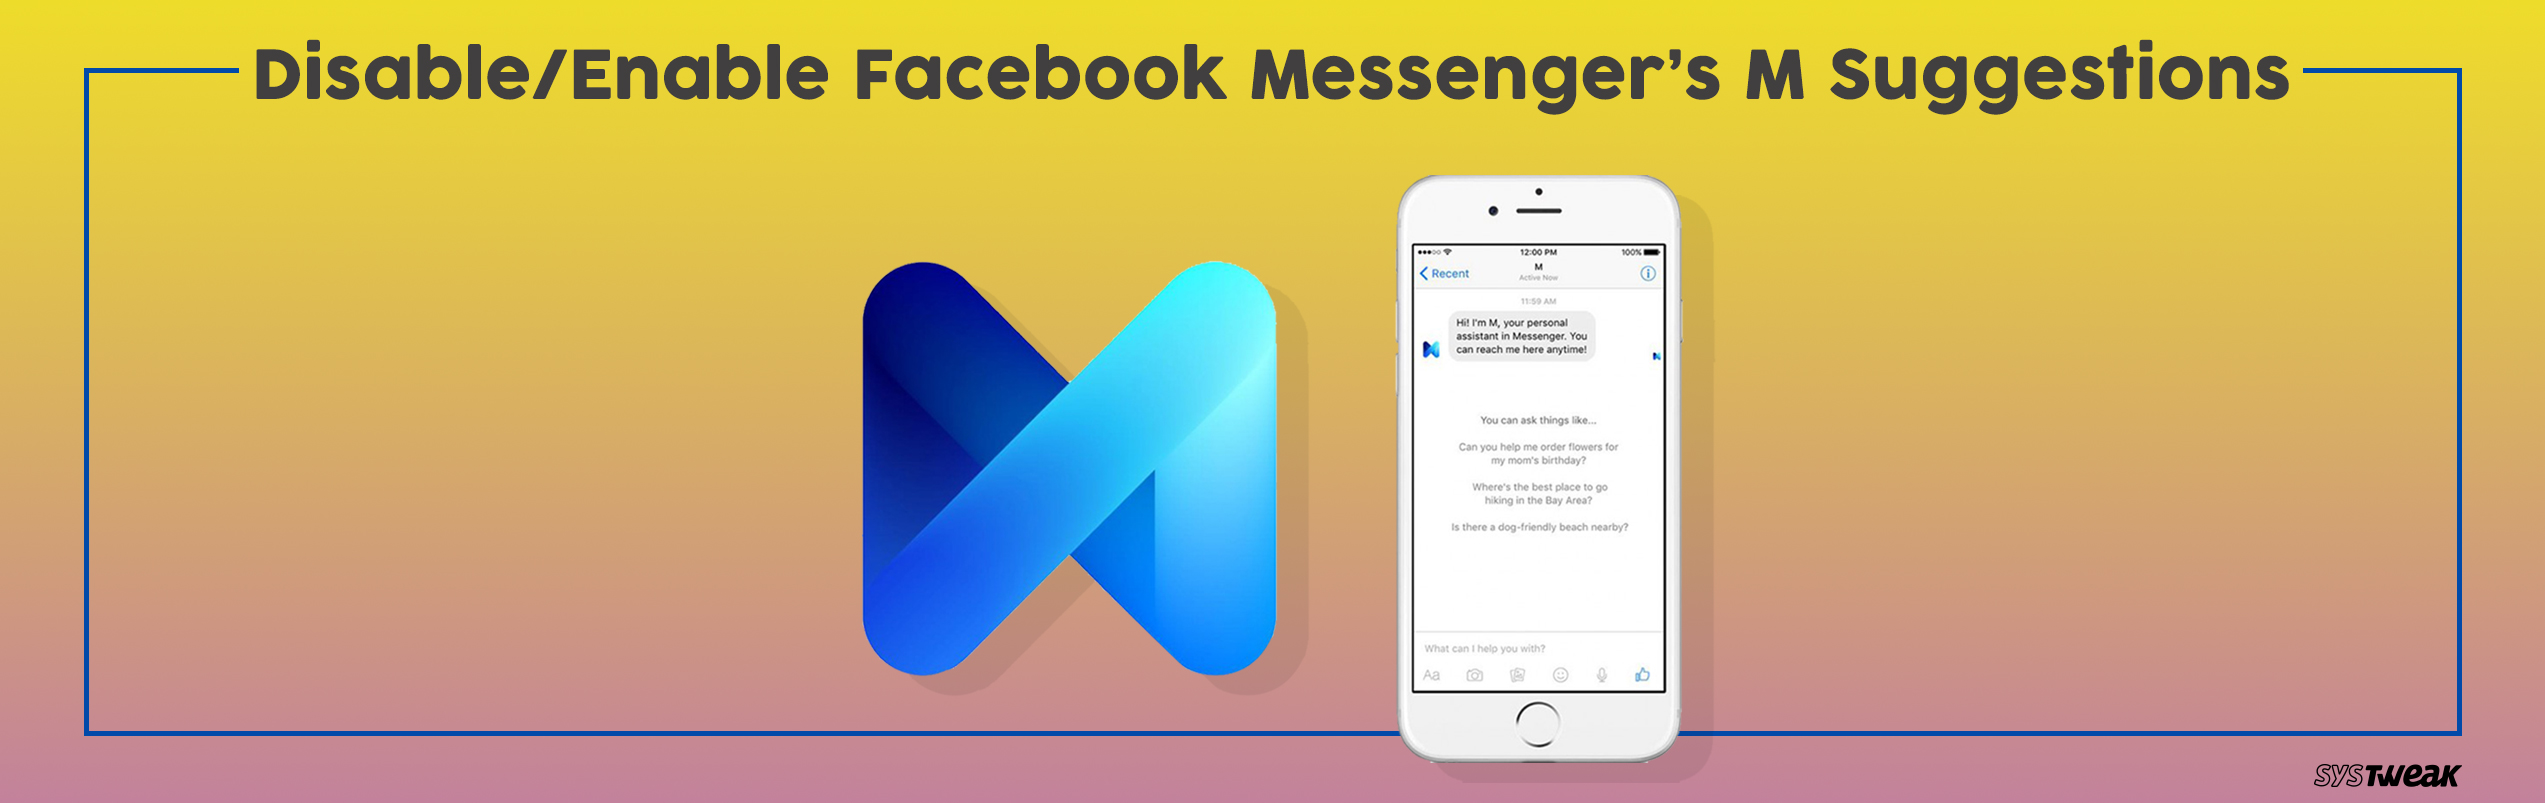 Toggle Off & On Facebook Messenger's M Suggestions